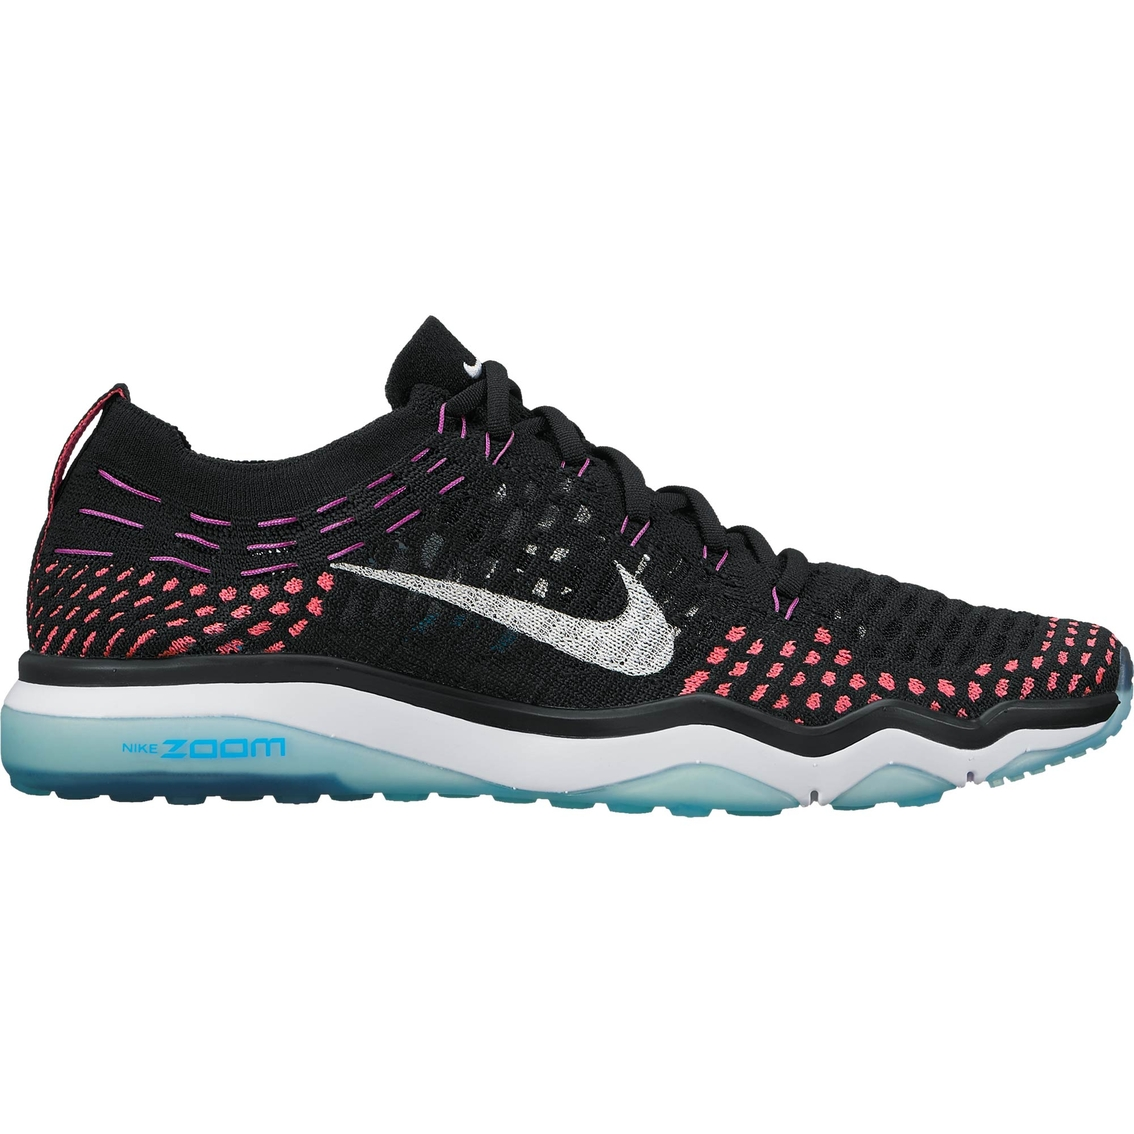 sale retailer 8026a f07f6 Nike Women s Fearless Flyknit Training Shoes